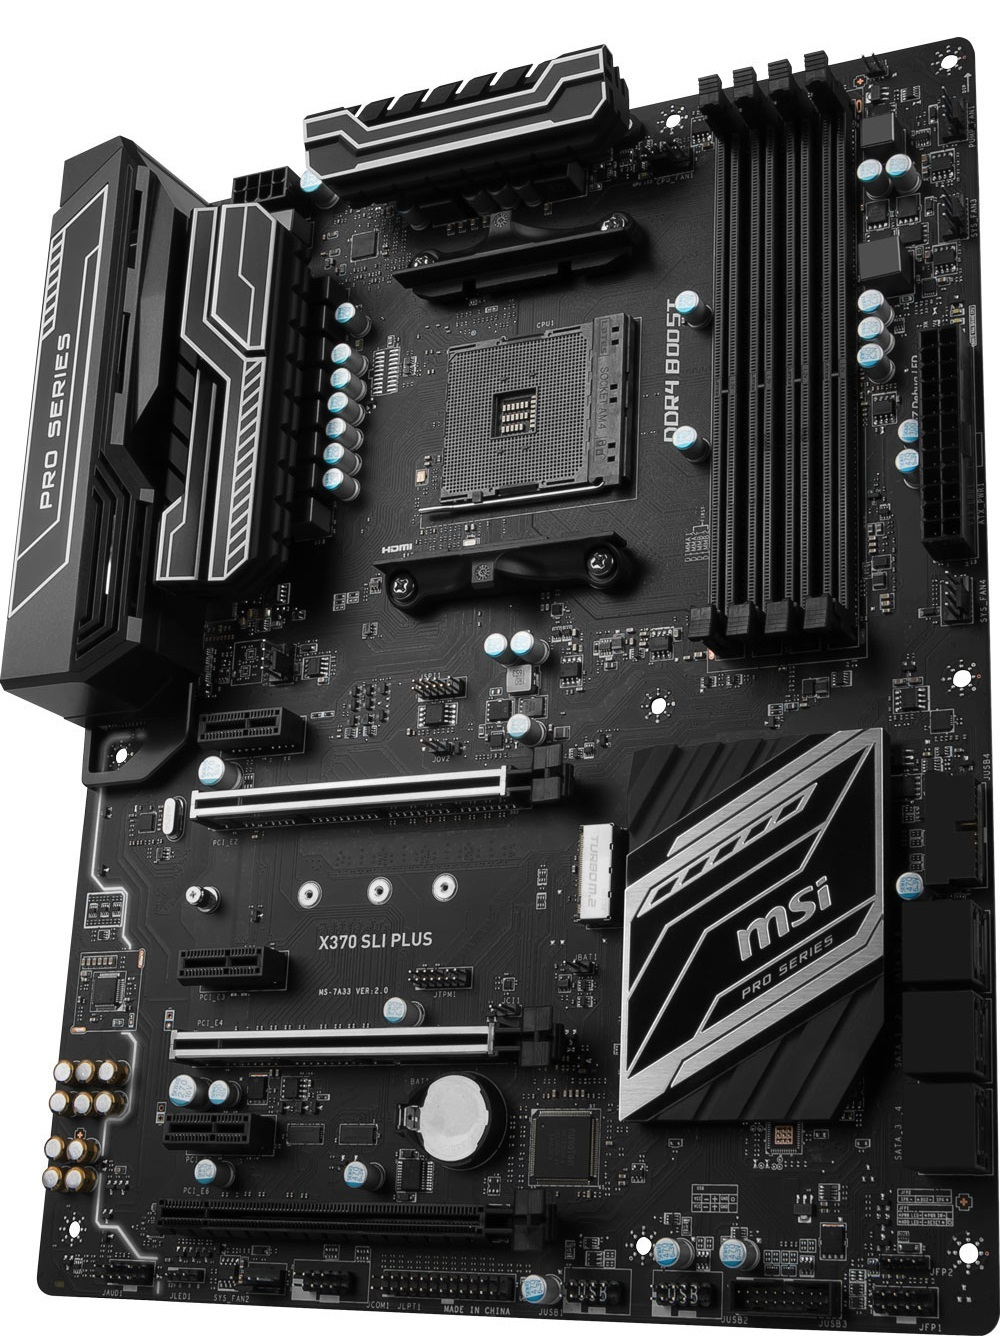 MSI X370 SLI Plus Motherboard image